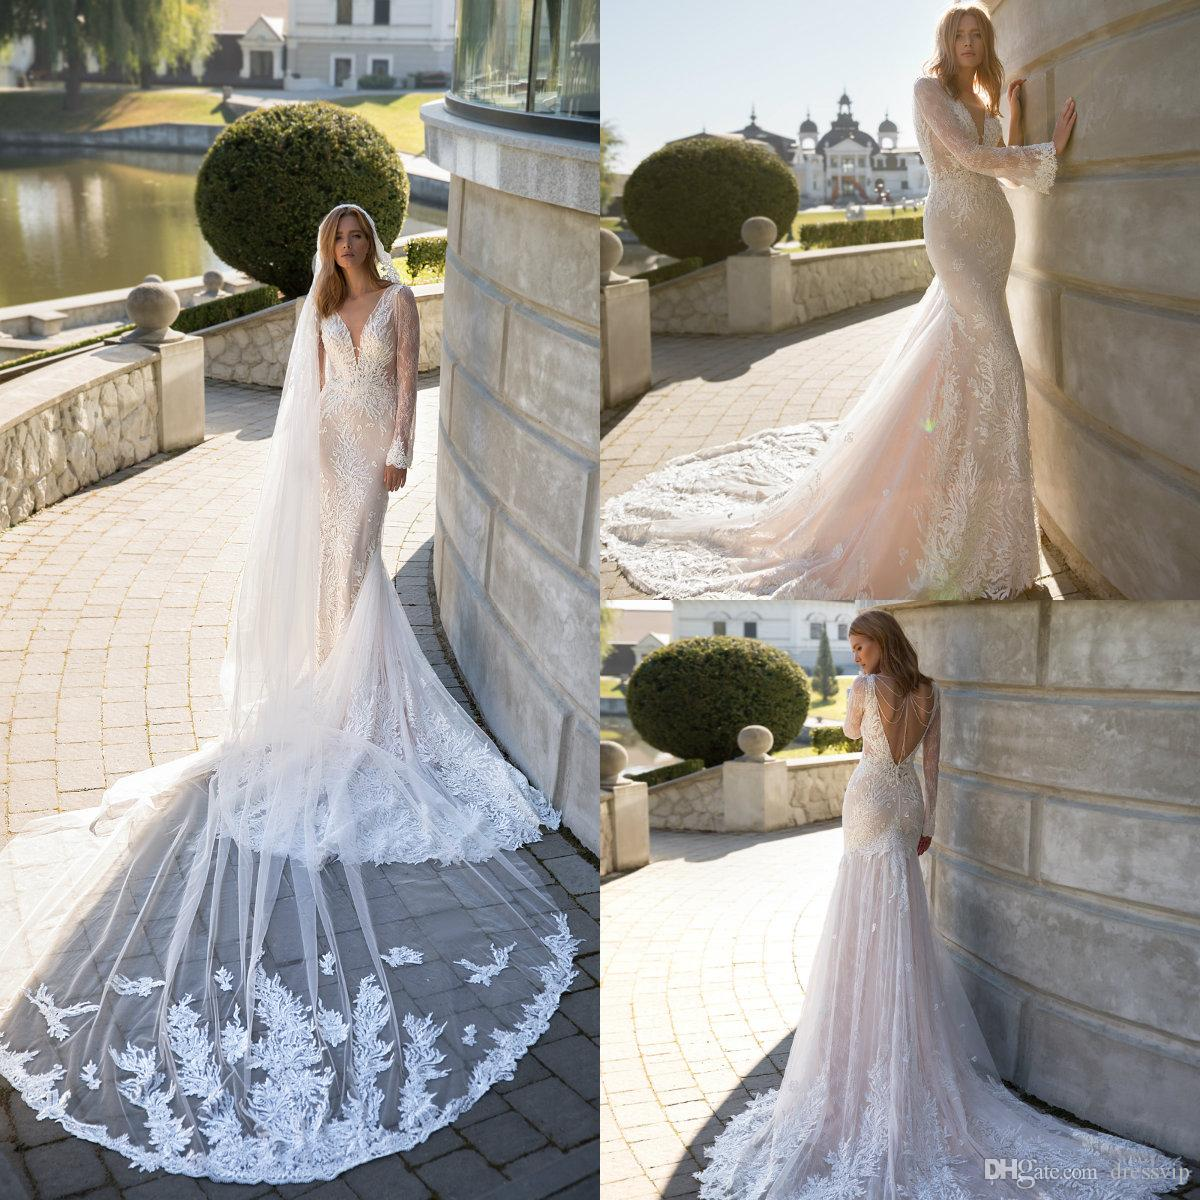 Modest Wedding Dresses 2019: 2019 Modest Wedding Dresses With Long Sleeves Lace